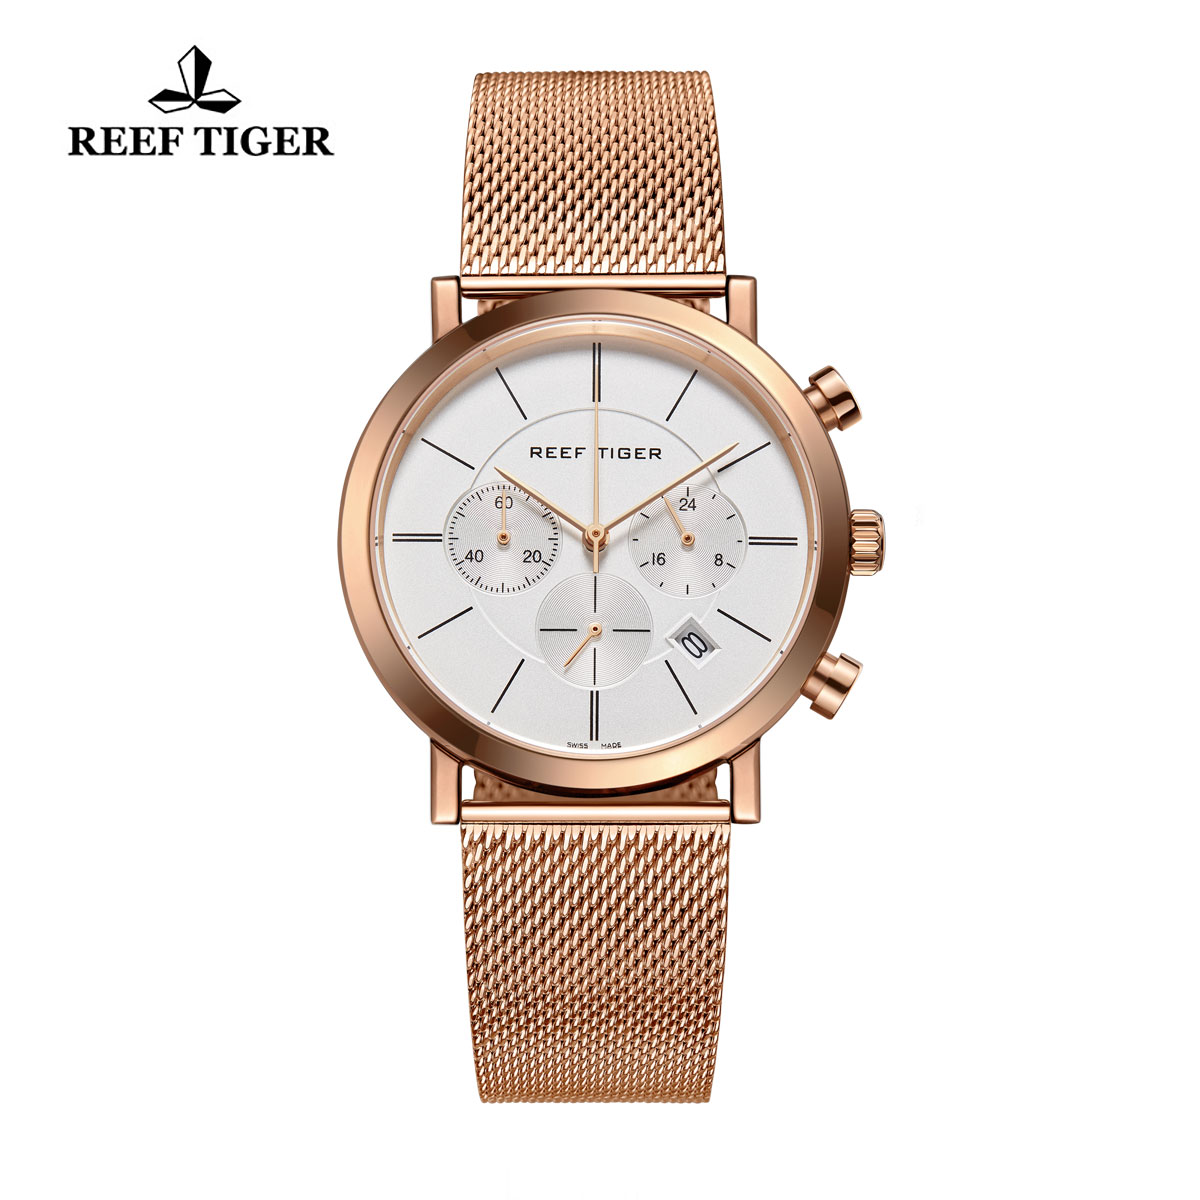 Reef Tiger Business Watch Ultra Thin Rose Gold White Dial Chronograph Quartz Watch RGA162-PWP